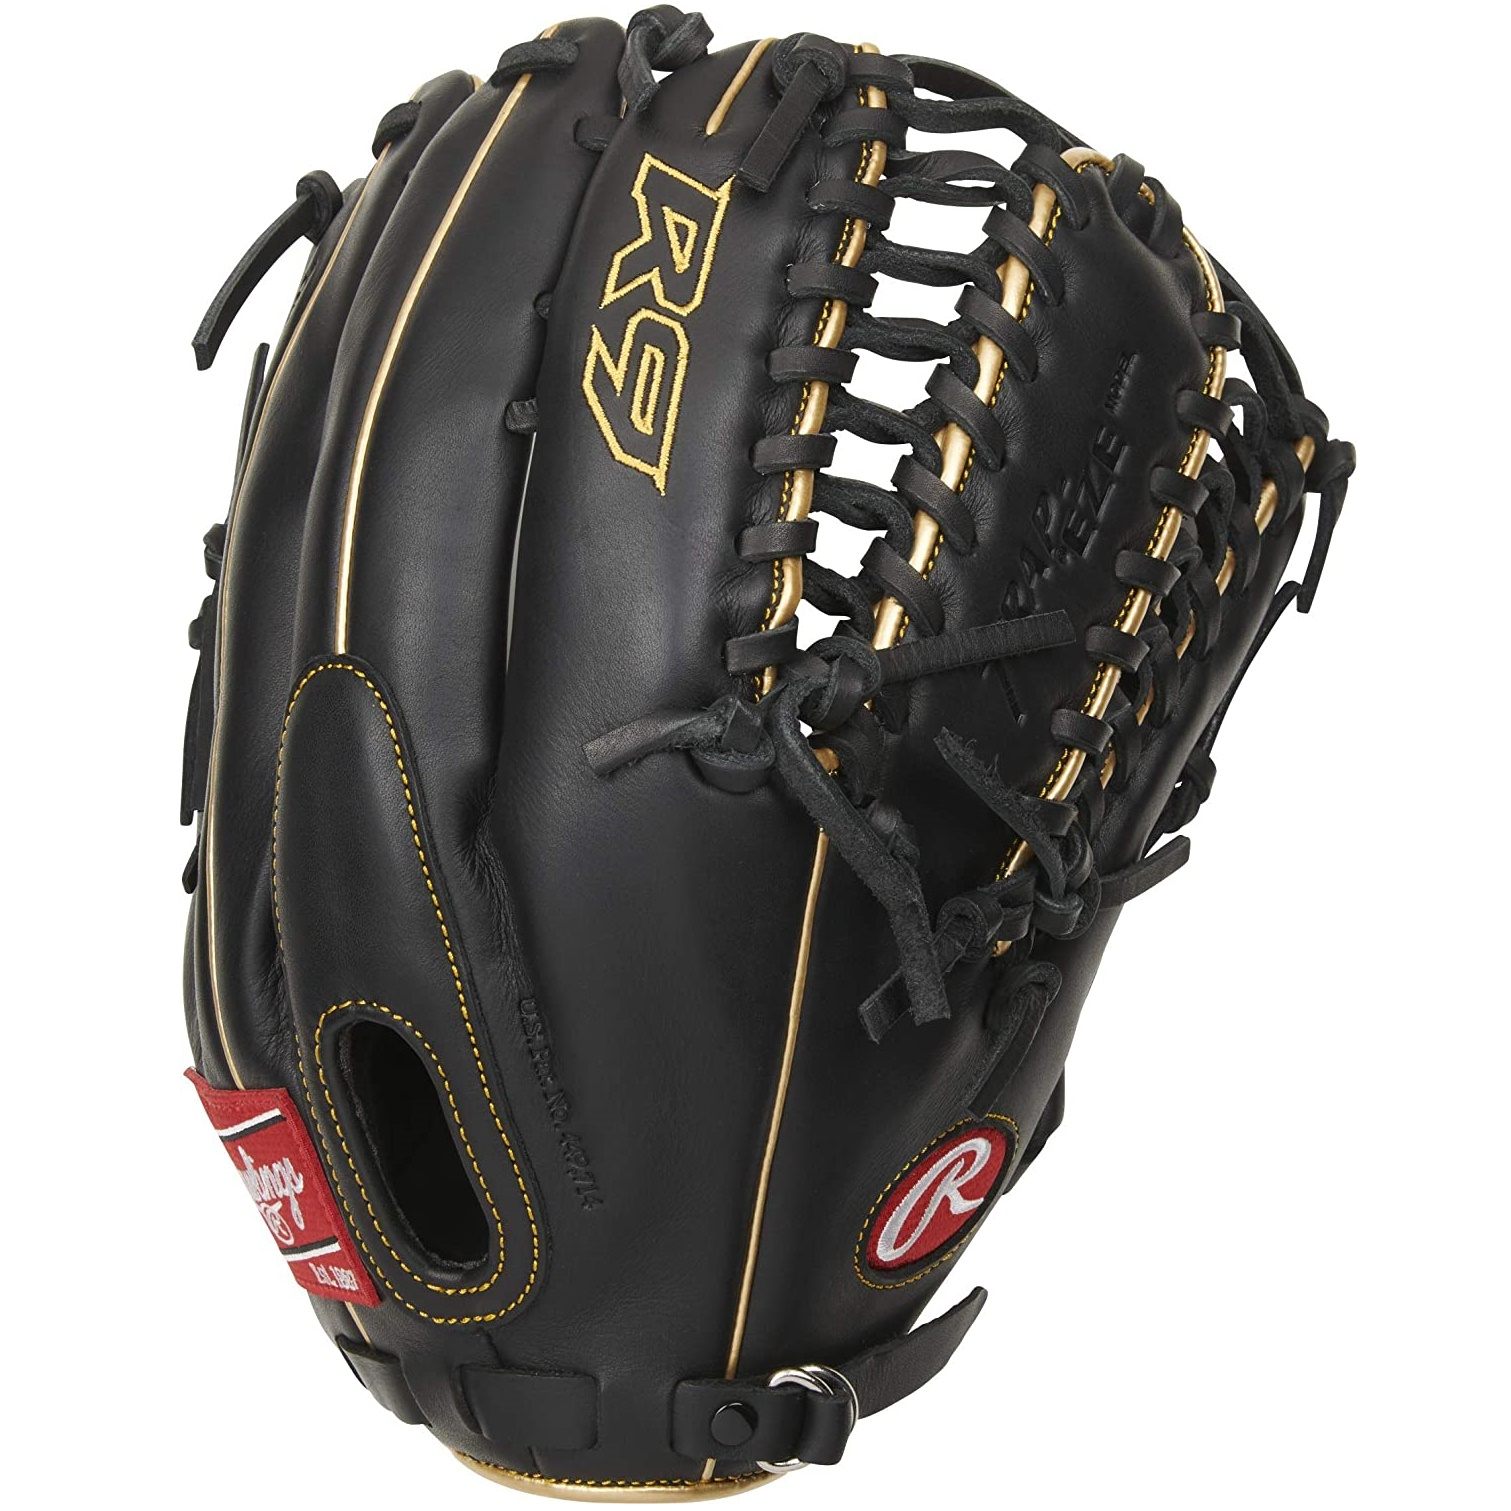 rawlings-r9-baseball-glove-12-75-inch-right-hand-throw R96019BGFS-RightHandThrow   The 2021 R9 Series 12.75-Inch outfield glove was carefully constructed with